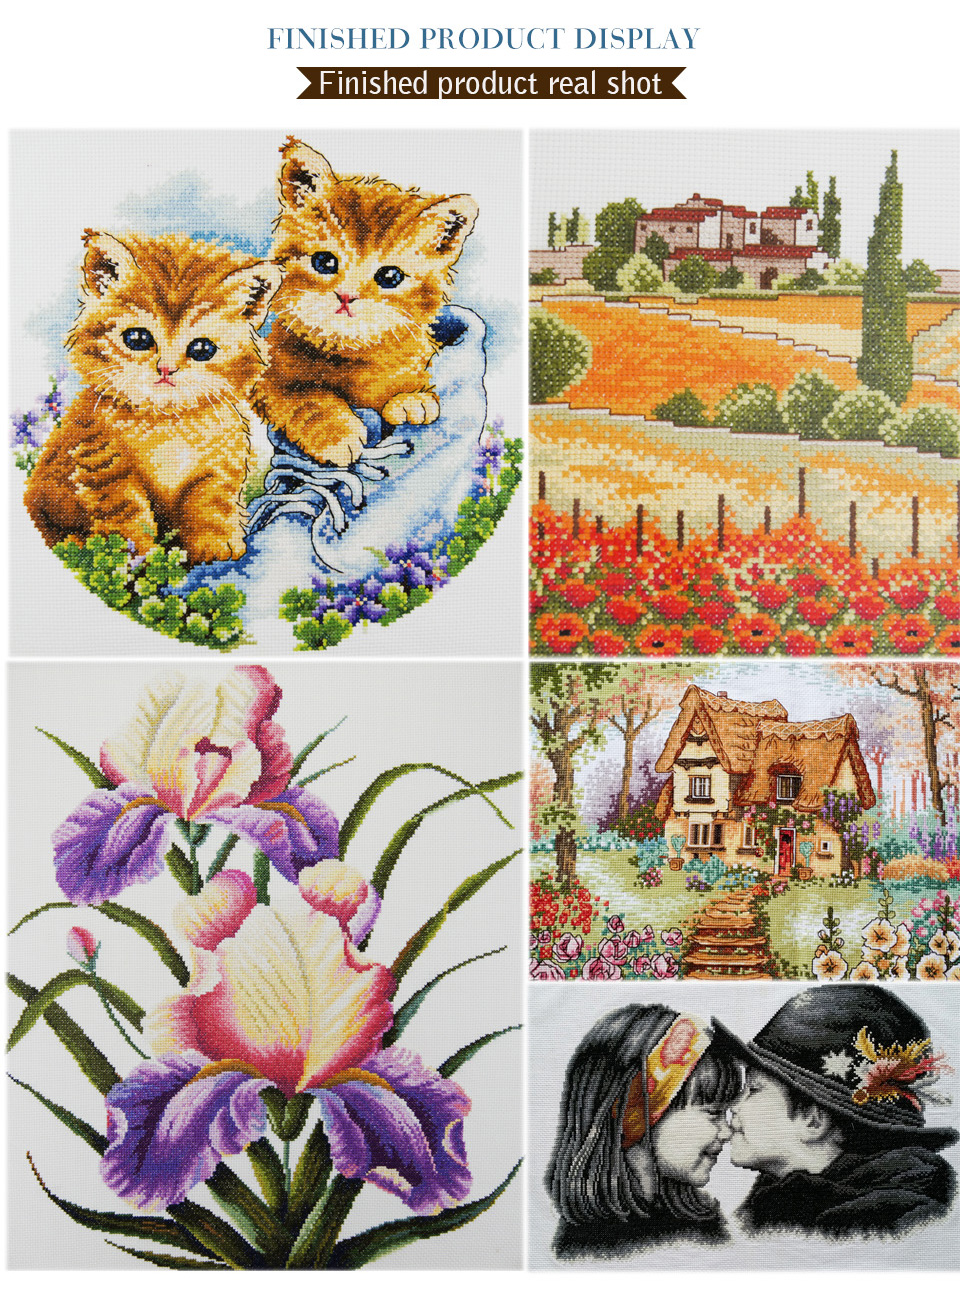 11CT 14CT Cloth Cross Stitch Kit Pope Character Series DIY Spiraling Needlework Manual Chinese Characteristic Embroidery (11)